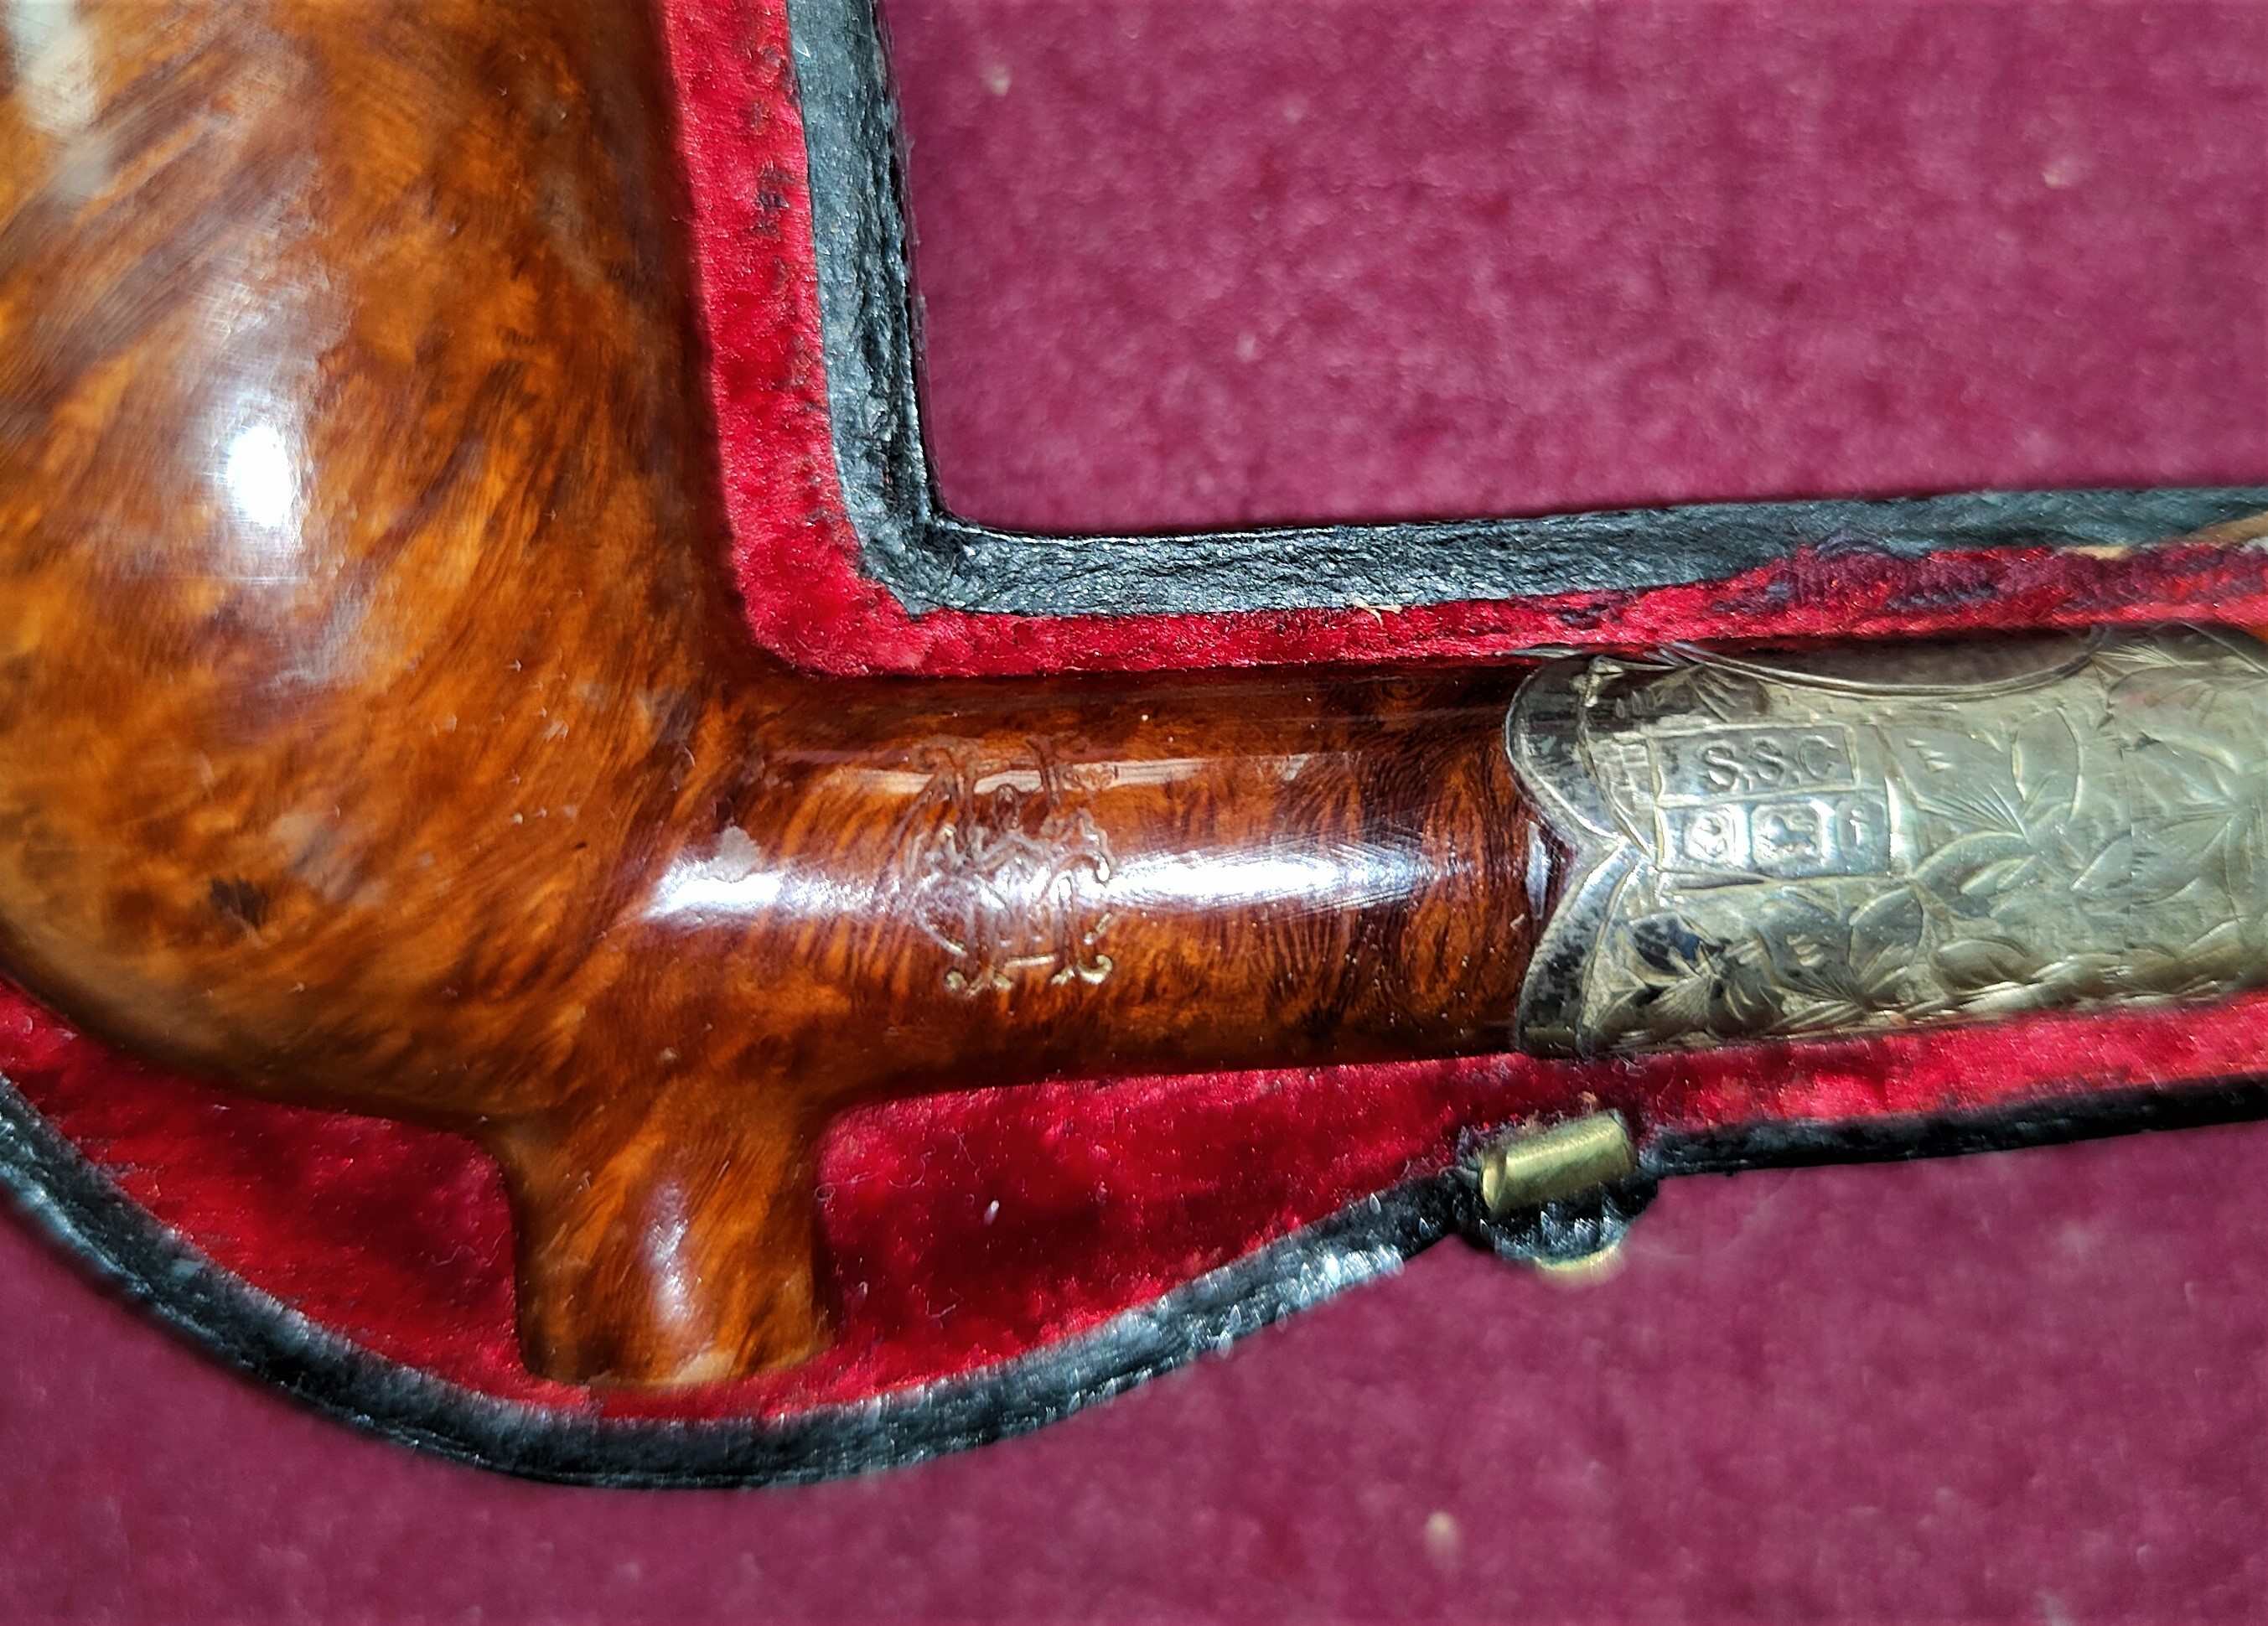 A 19th century briar pipe with silver mounts (dated 1883) and amber mouthpiece, cased - Image 2 of 2